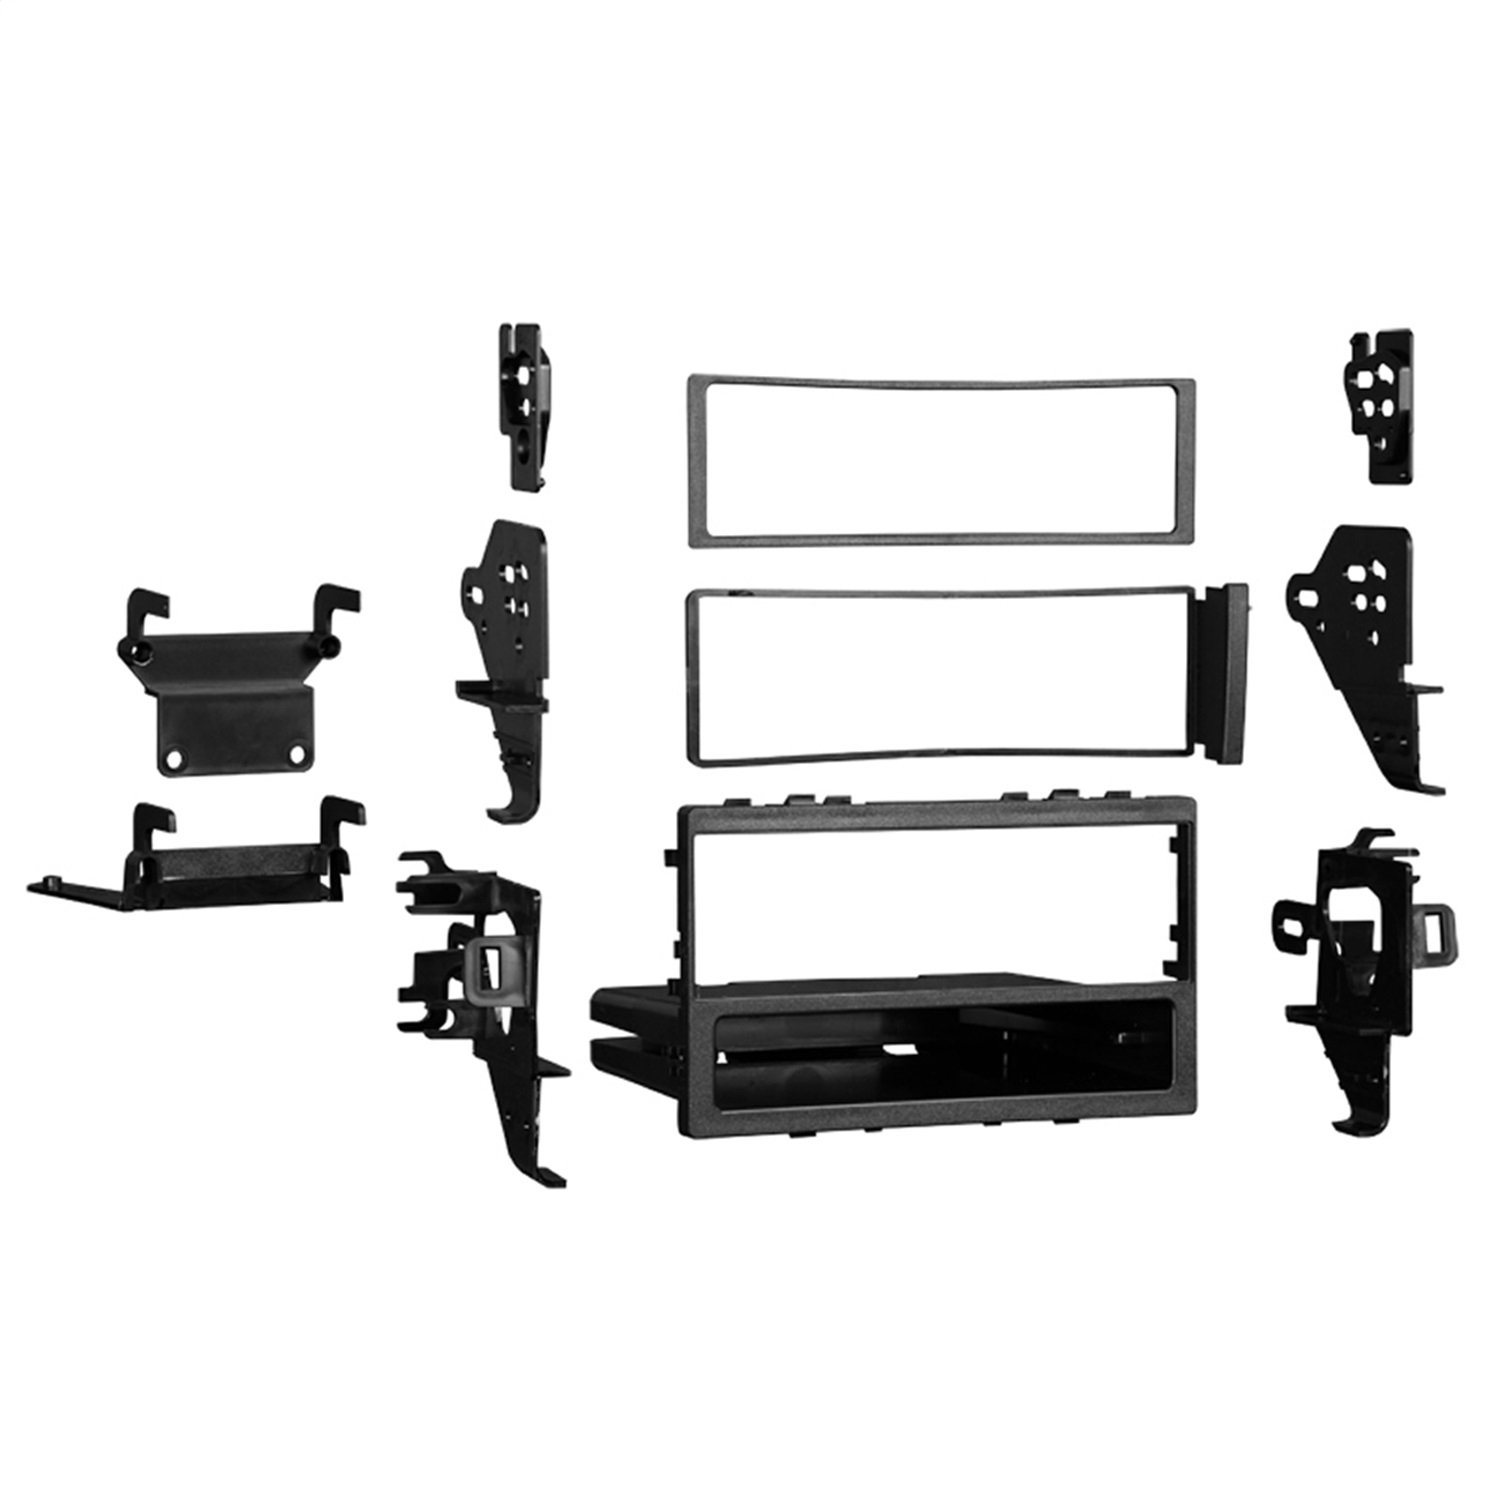 Metra 99-7898 Dash Kit For Honda Multikit88-Up